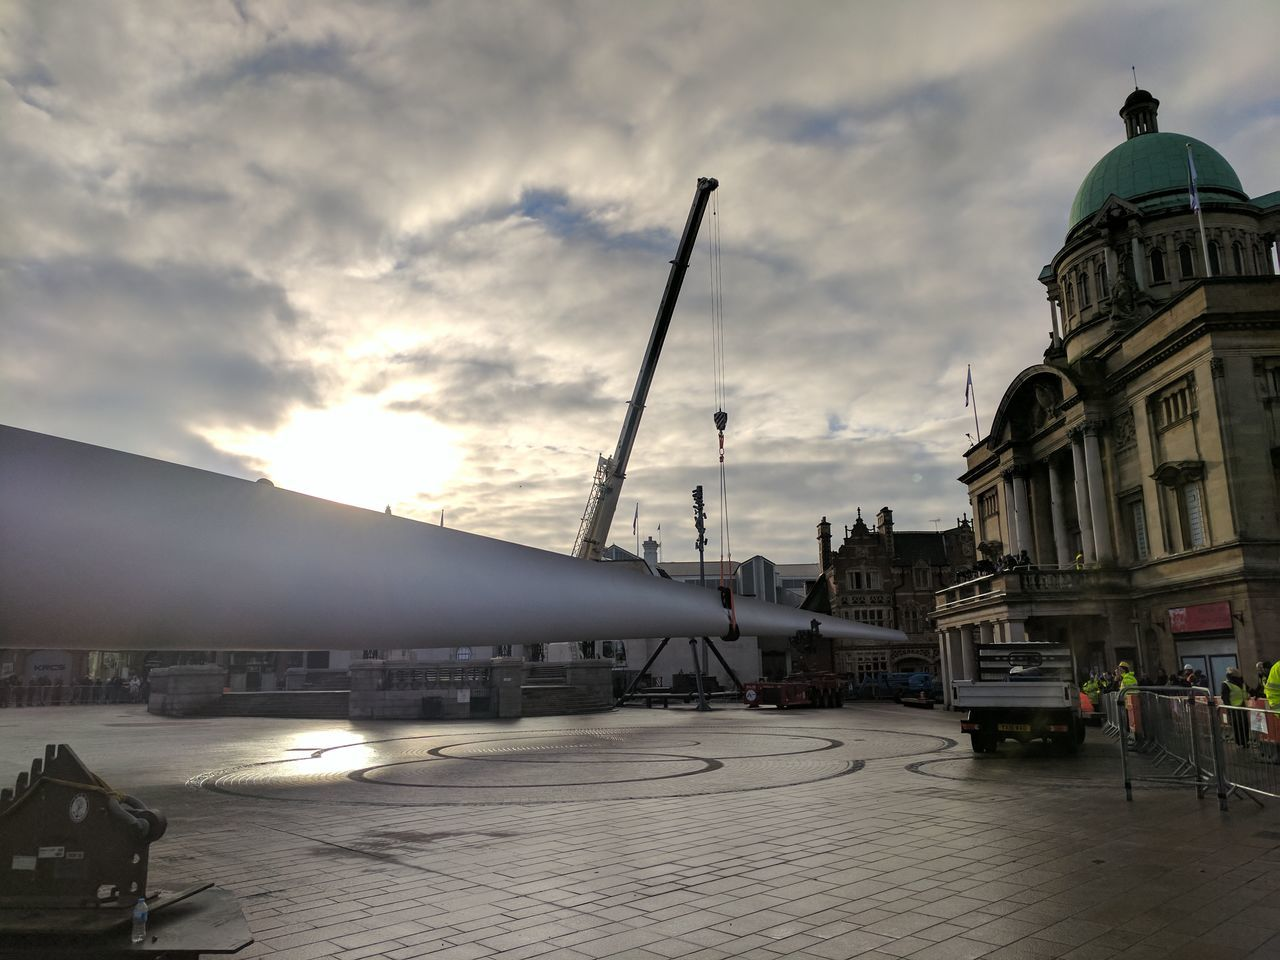 Siemens wind turbine blade is lifted into position in Hull's Queen Victoria Square (08/01/2017) during Hull 2017 City Of Culture Architecture Blackandwhite Building Exterior Built Structure City City Hall Cloud - Sky Day Hull Hull 2017 Hull City Of Culture 2017 Hull2017 Human Body Part No People Outdoors Siemens  Sky Travel Travel Destinations Turbine Wind Turbine